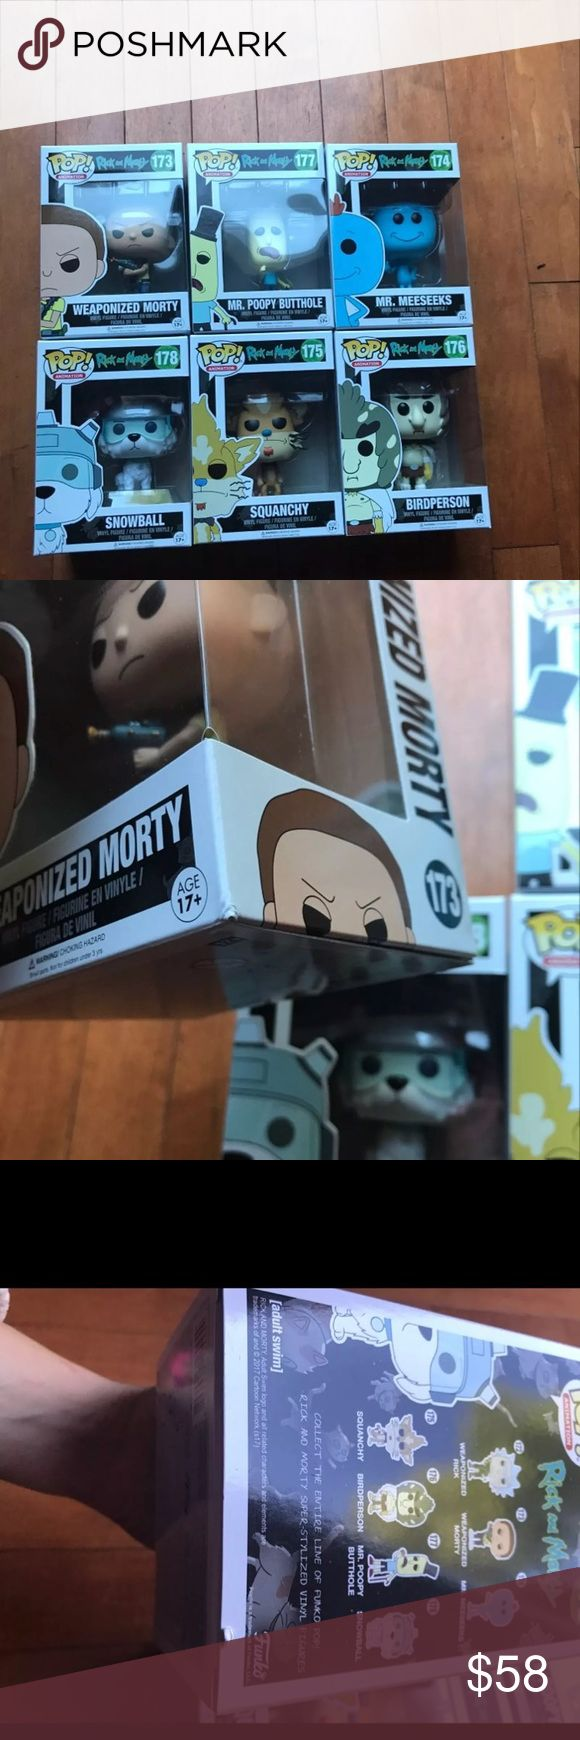 Rick and Morty Funko Pops X 6(PLZREAD) DISCOUNTED FOR BOX DAMAGE AS SHOWN IN LAST FEW PICS*Contents Unharmed*Perfect For out Of Box Collectors*Brand New In Box***No TRADES*Price Is Firm*Appropriate Comments Only* Mr Meeseeks,Mr Poopy Bhole,Squanchy,weaponized Morty, Birdperson,Snowball(please see photos for damage) Accessories